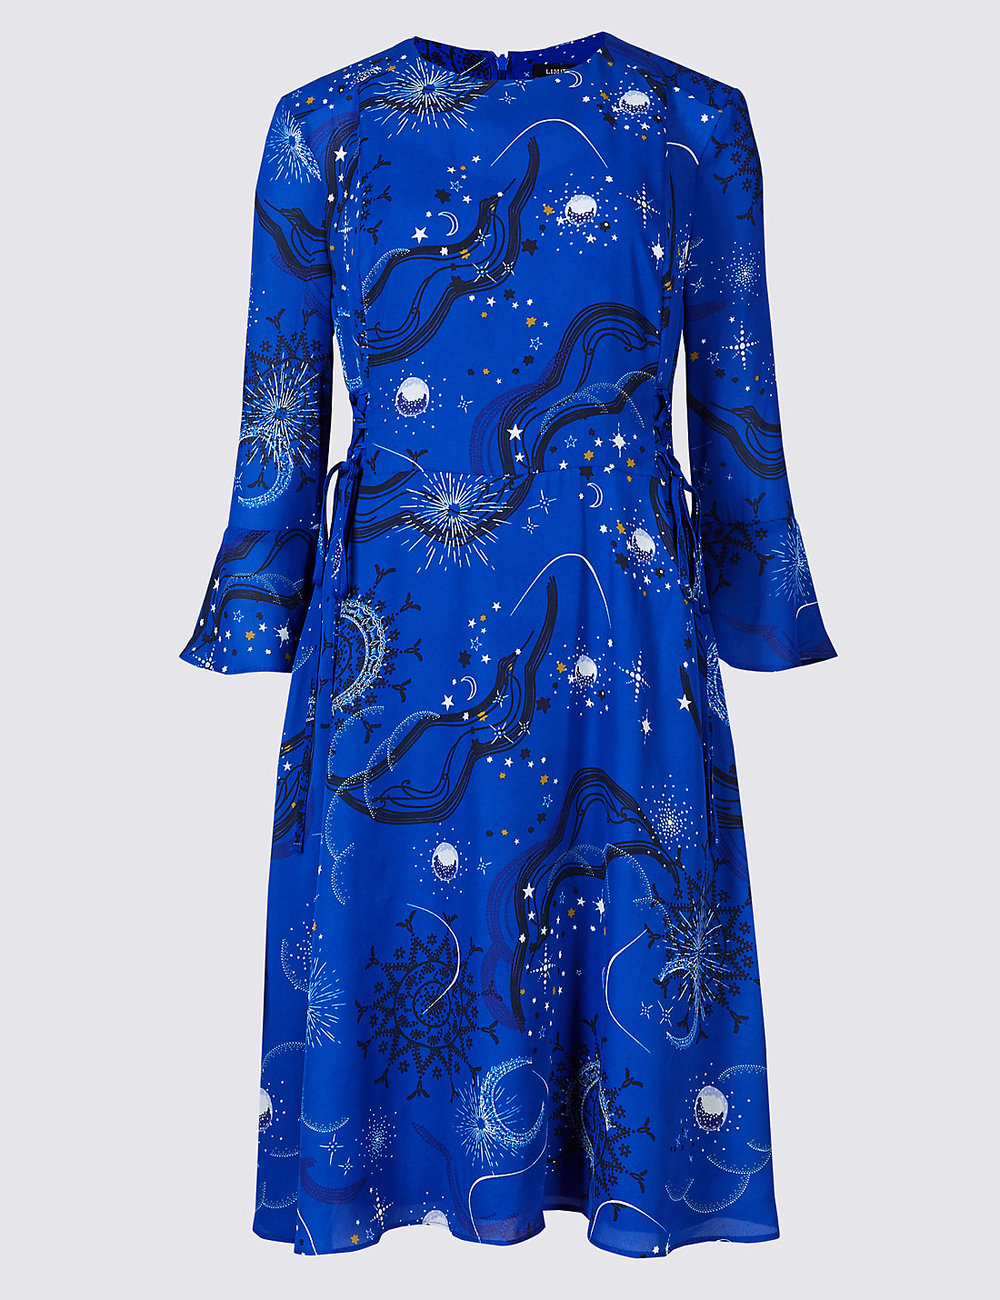 blue-sleeves-dress-m&S.jpeg